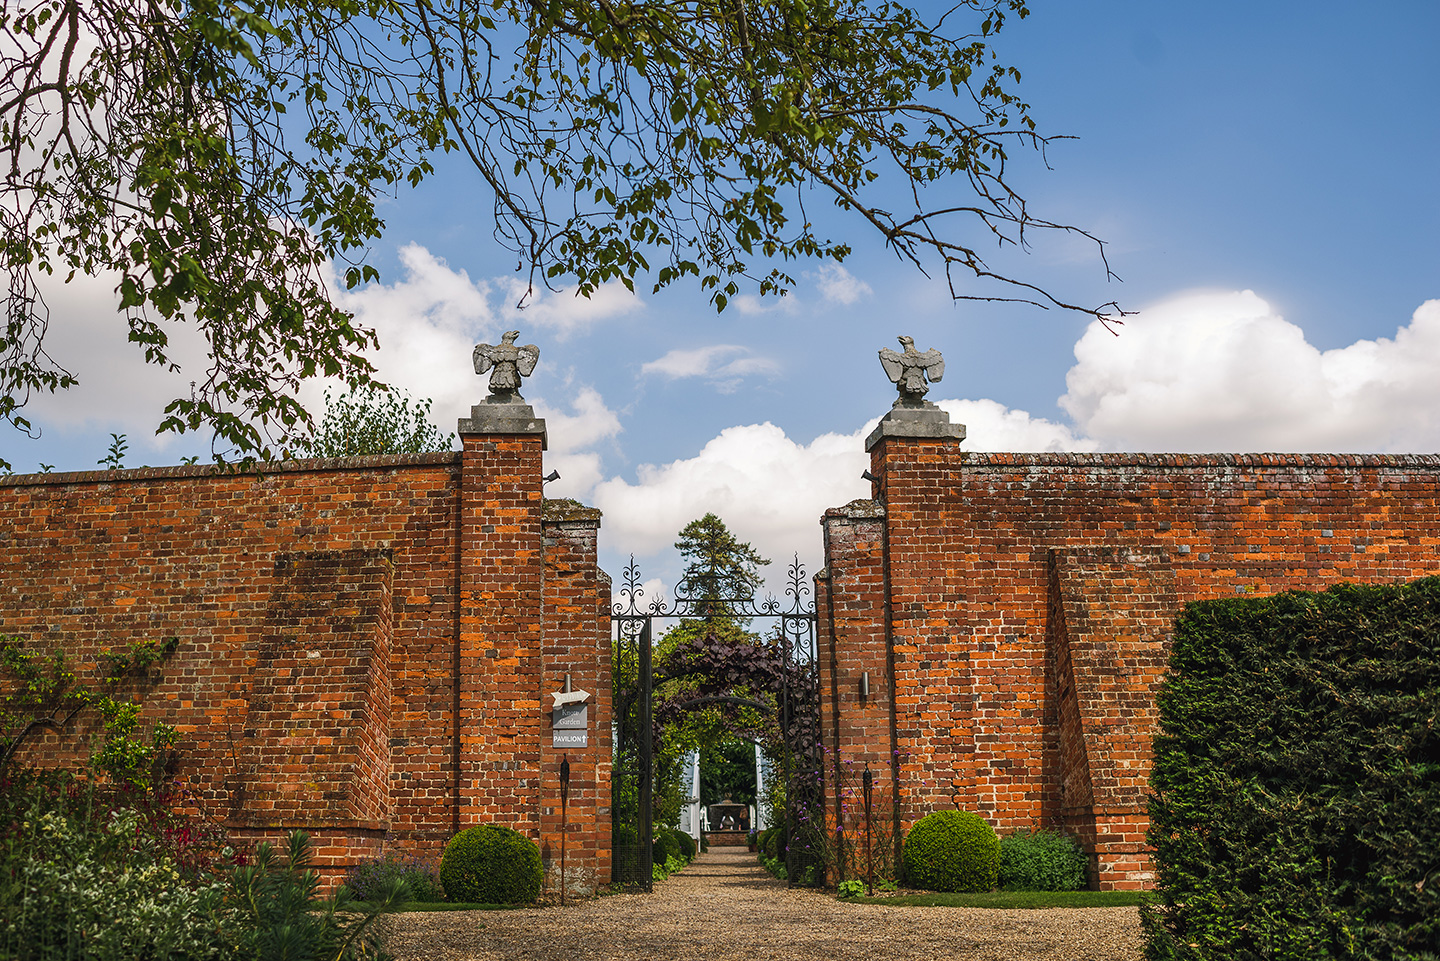 The magnificent gated entrance to the gardens at Braxted Park wedding venue in Essex